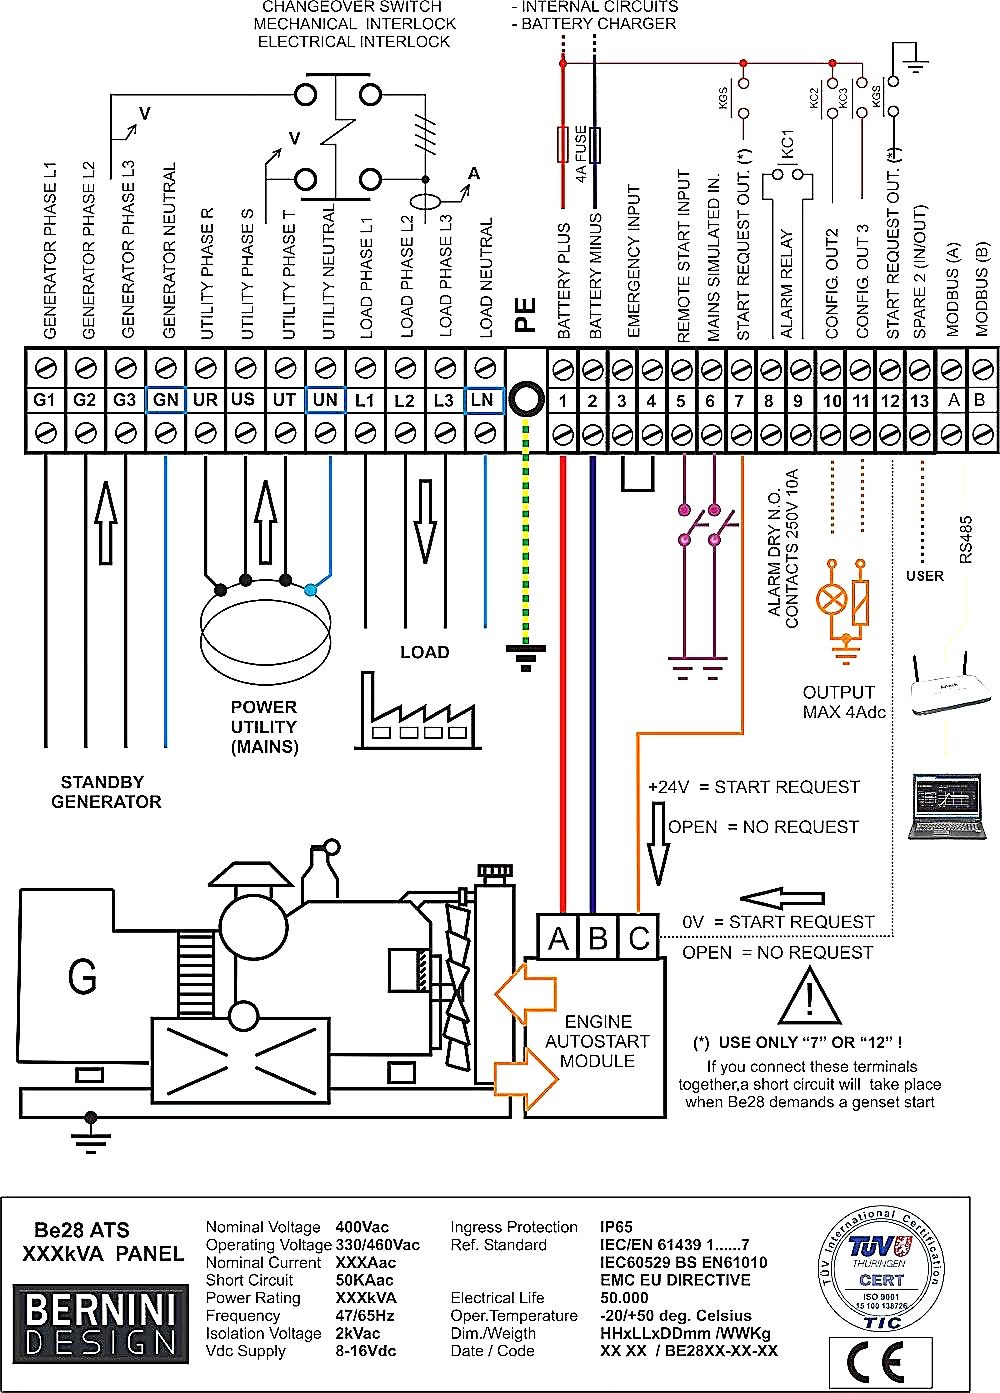 generac smart switch wiring diagram Download-Generac Generator Transfer Switch Wiring Diagram Generac Battery Charger Wiring Diagram Awesome Generac Automatic Transfer 14-q